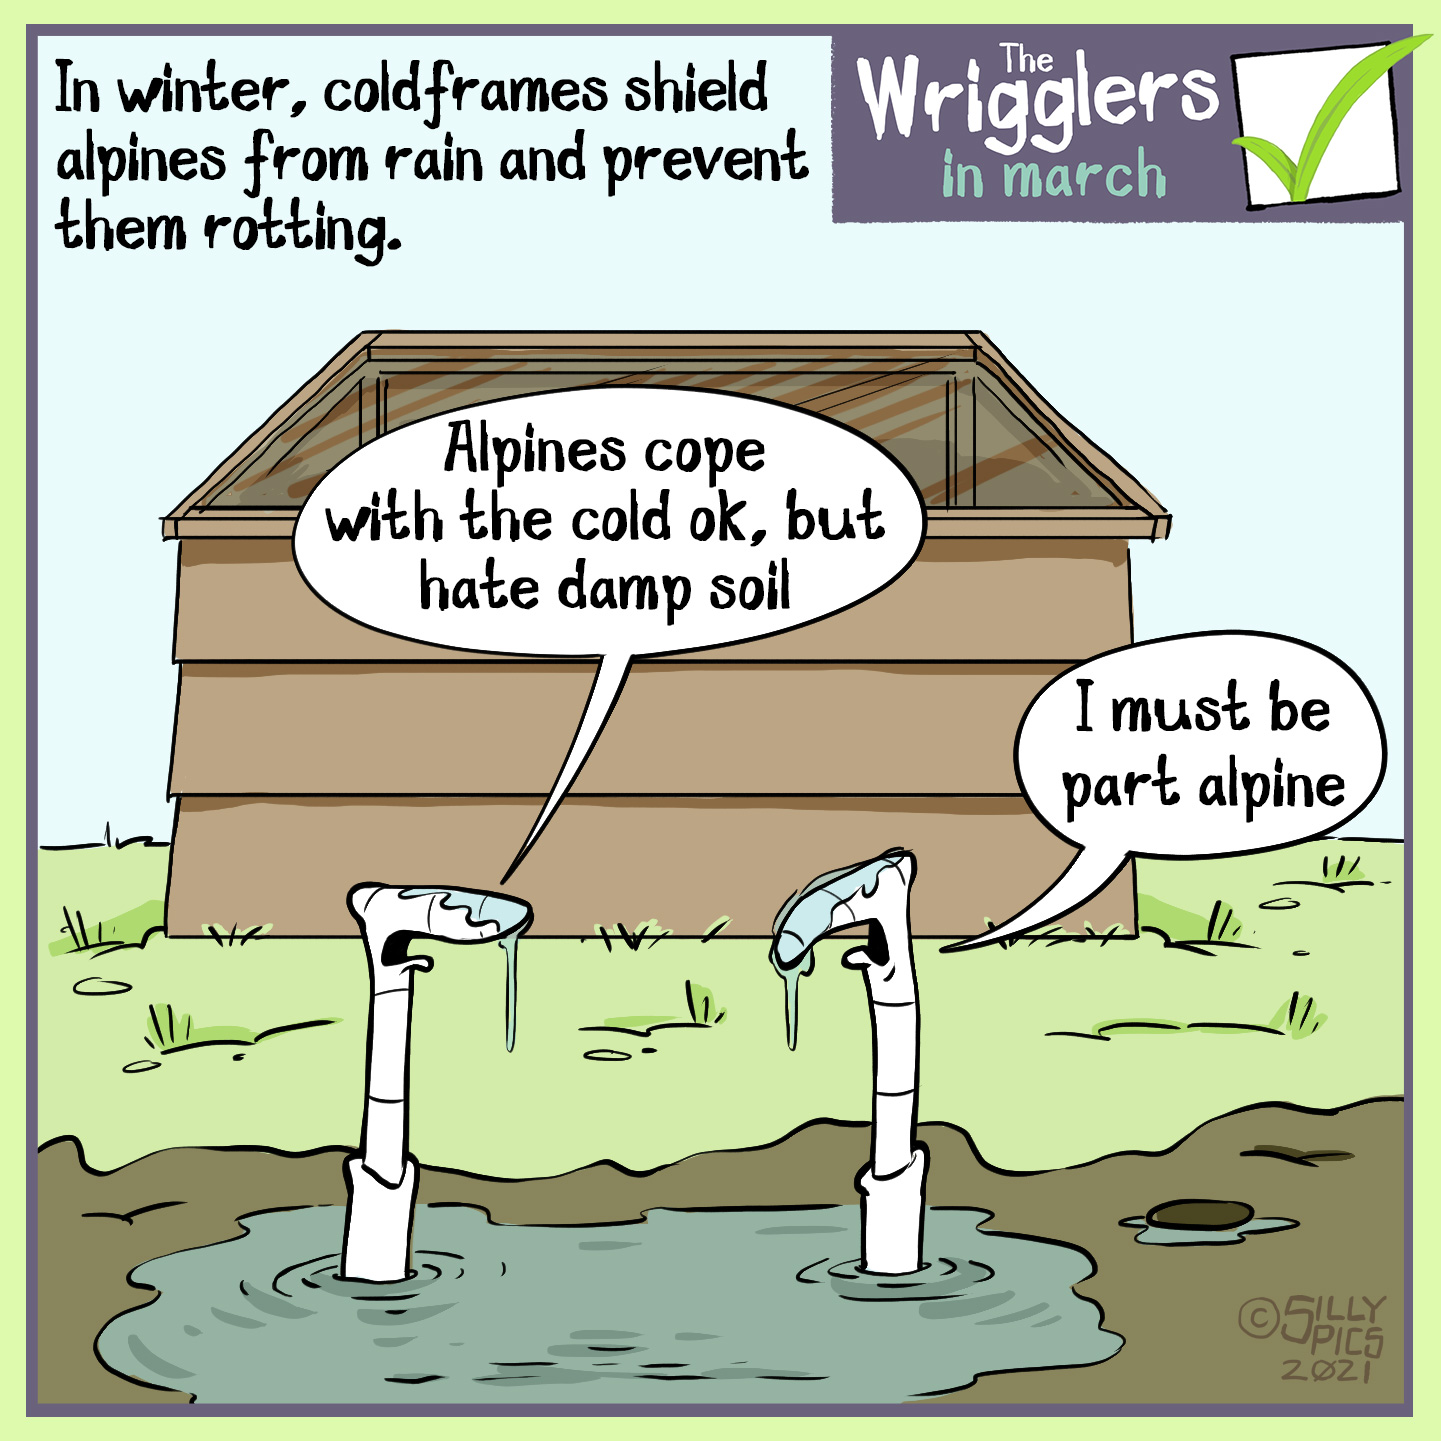 "This cartoon talka bout using a cold frame in the winter months to protect alpines from the cold and wet, damp soil. Two worms are in a muddy waterlogged border, in the background there is a cold frame. One worm says to the other, "" Alpine can cope th the cold, they hate damp soil."" The other worm says, ""I must be part Alpine."""